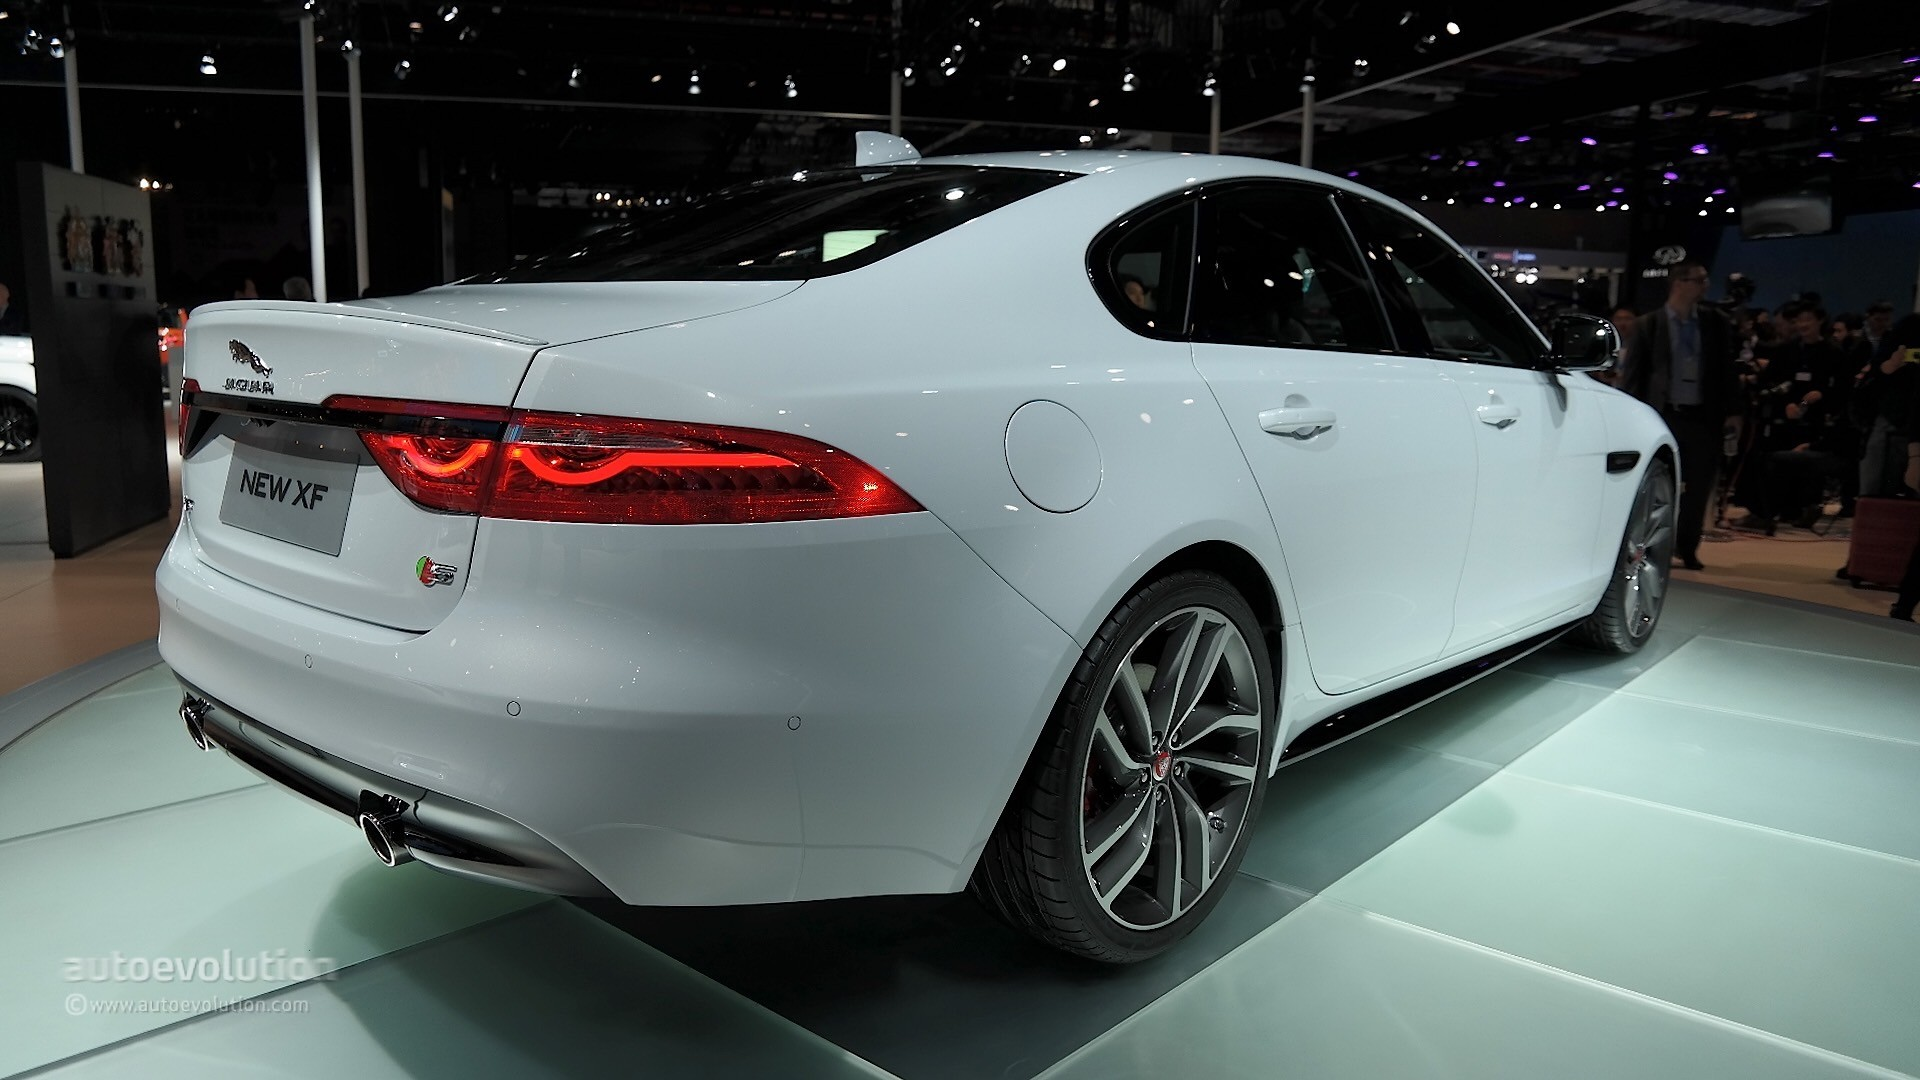 2015 jaguar xf adds new models higher base price autoevolution. Black Bedroom Furniture Sets. Home Design Ideas